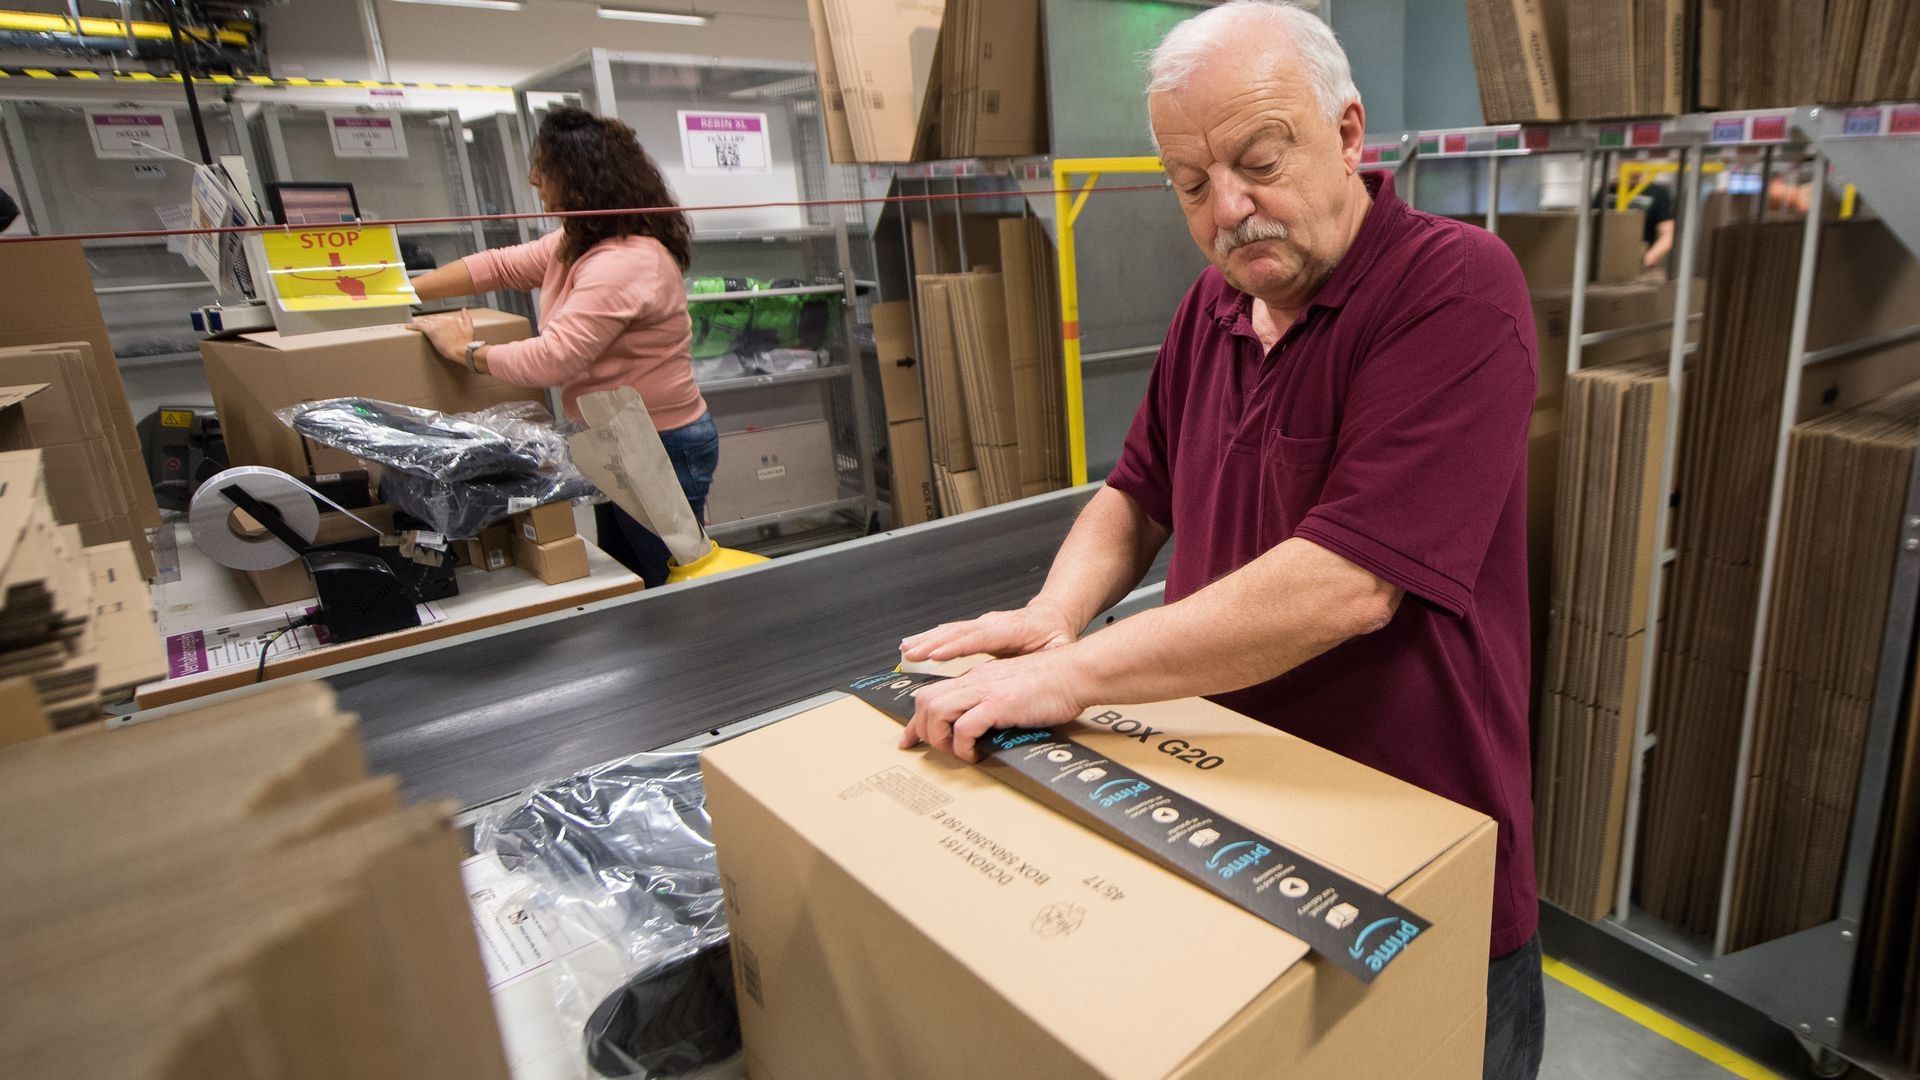 Man packaging amazon boxes.